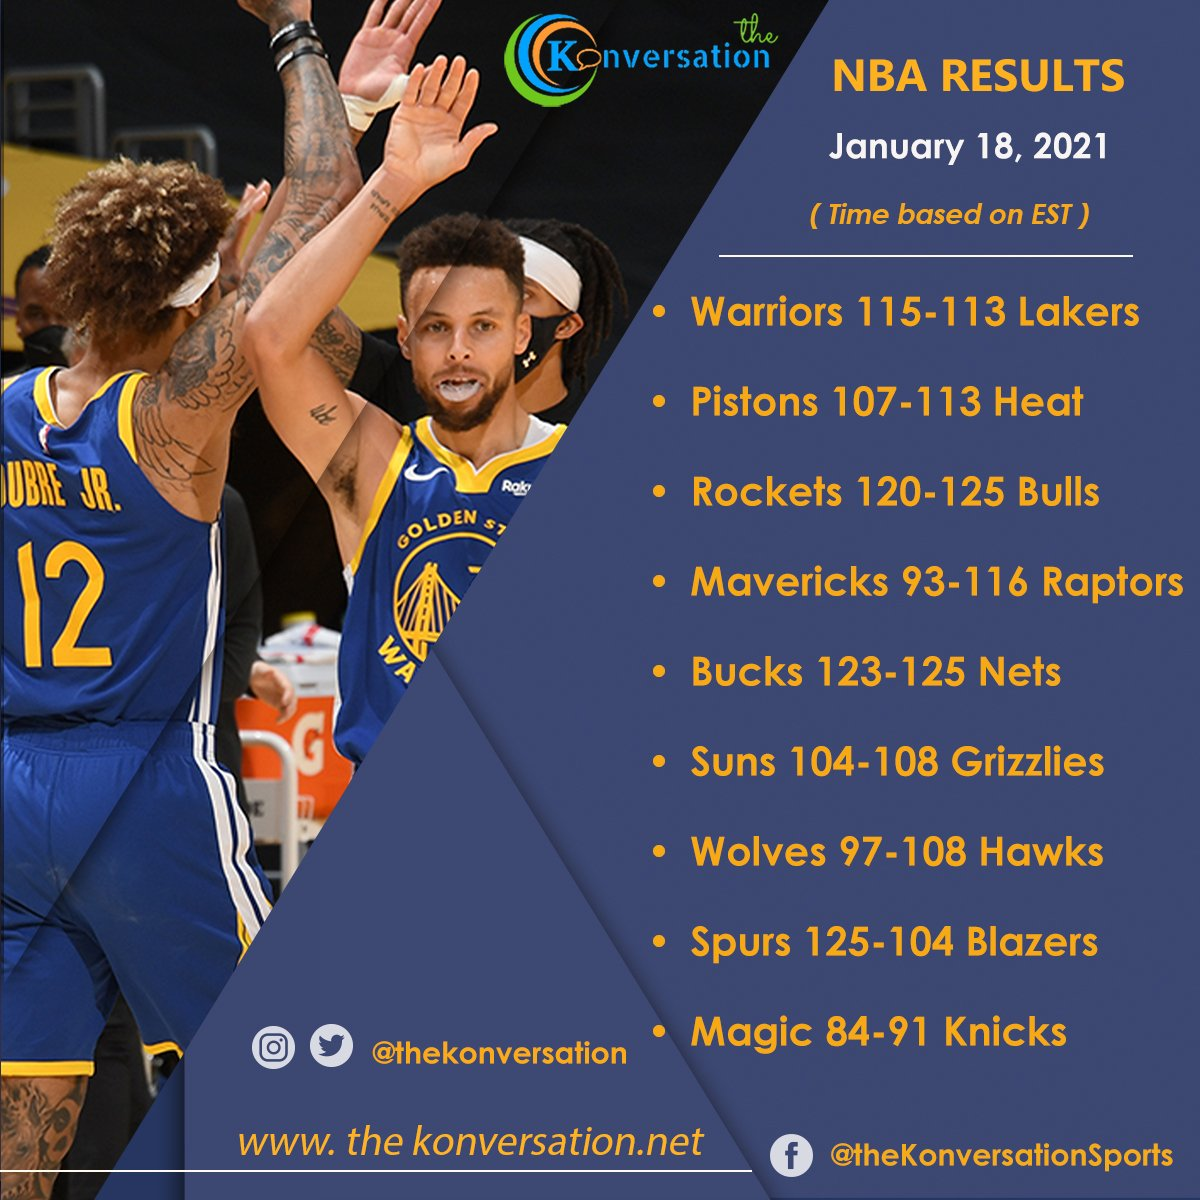 Stephen Curry and Kelly Oubre Jr. led Golden State to an INCREDIBLE come from behind victory over Lakers!🔥🔥🔥 # #Warrior defeat #Lakers, 115-113  #NBATwitterLive #nbadfs #DubNation  #nbanews